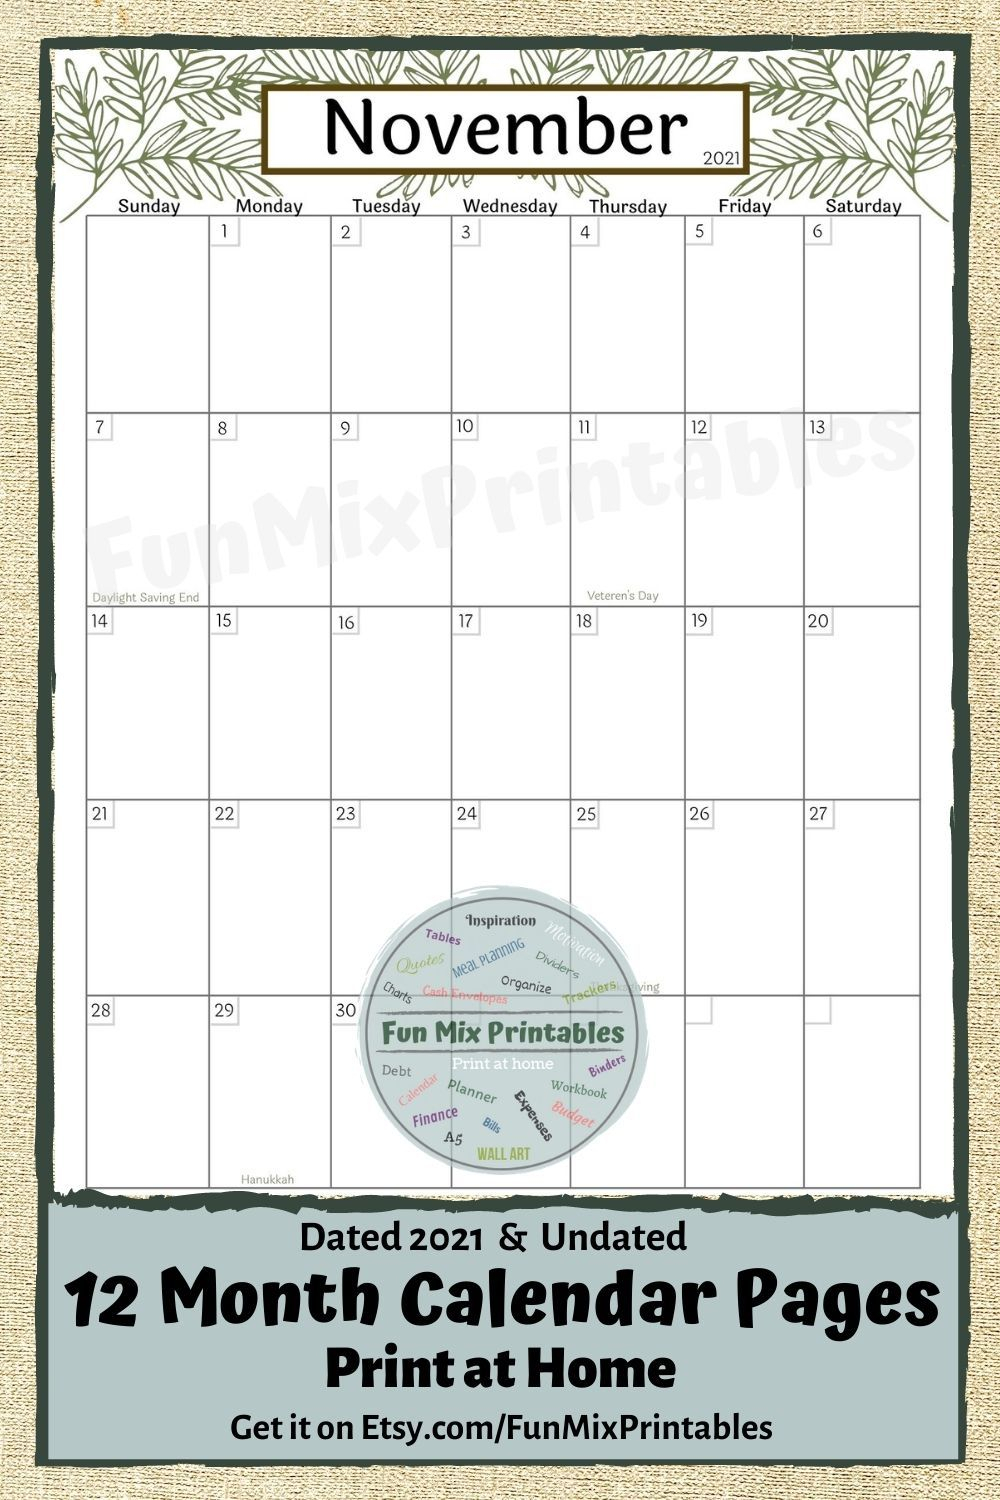 12 Month Calendar / Printable / Undated Calendar / Dated regarding 2021 Fill-In Calendar